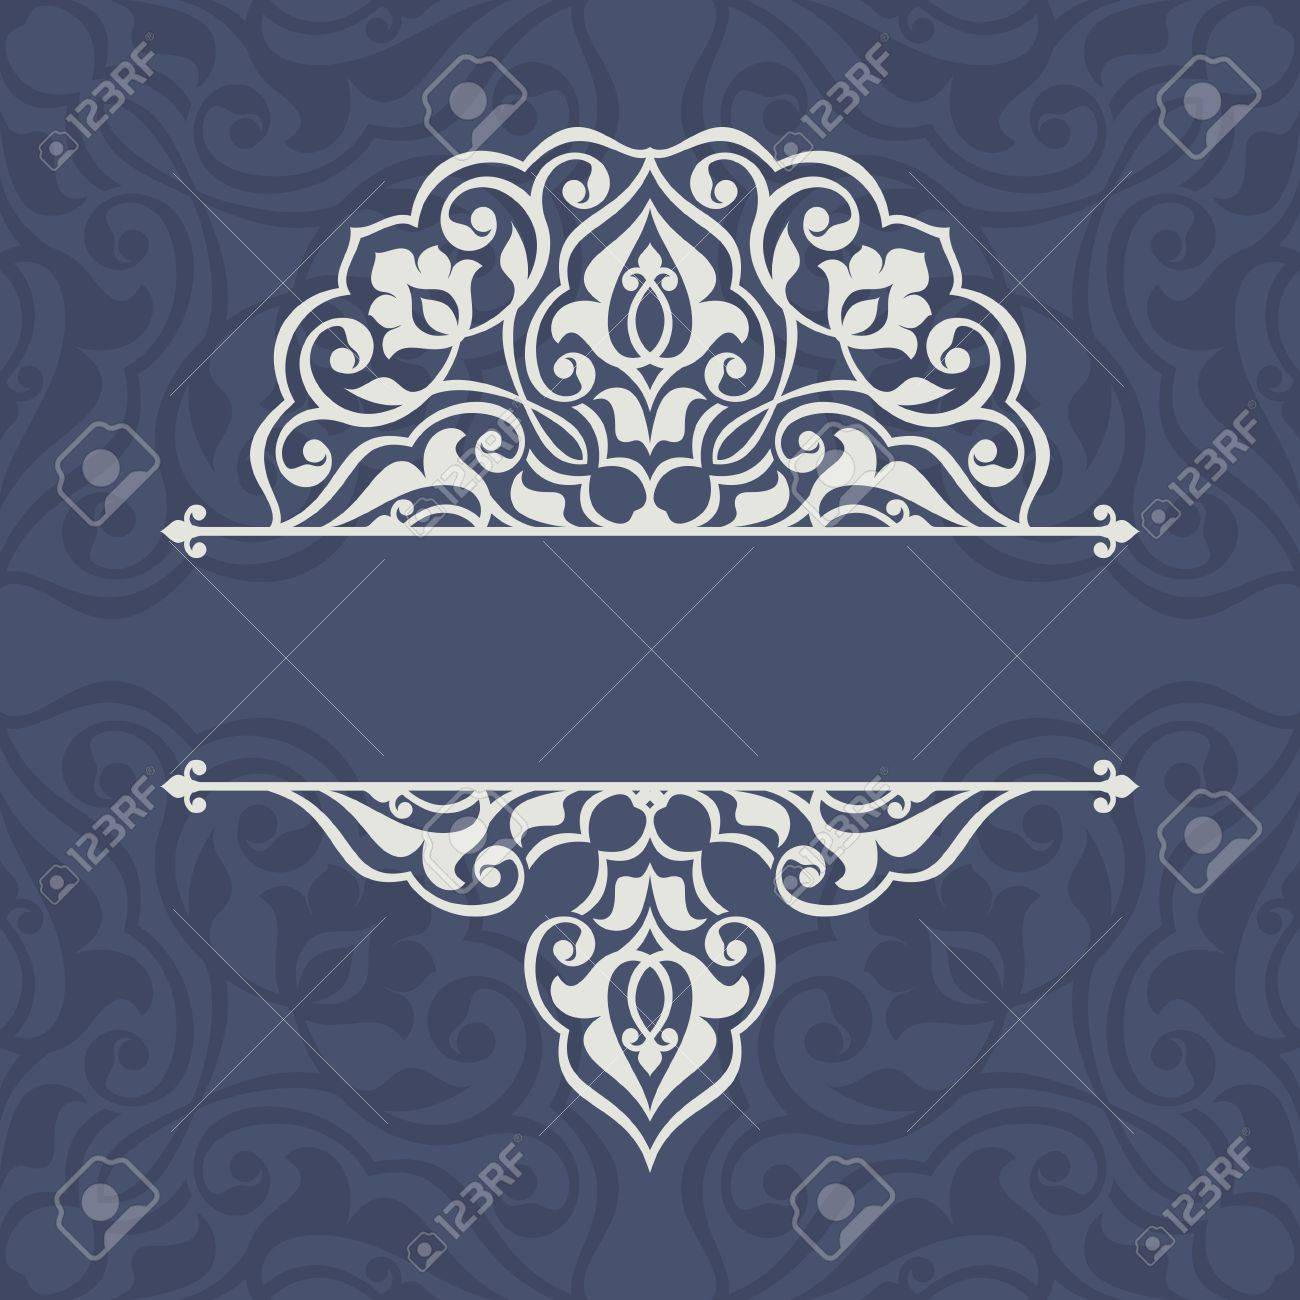 Vintage Invitation Card With Persian Pattern 10 Eps